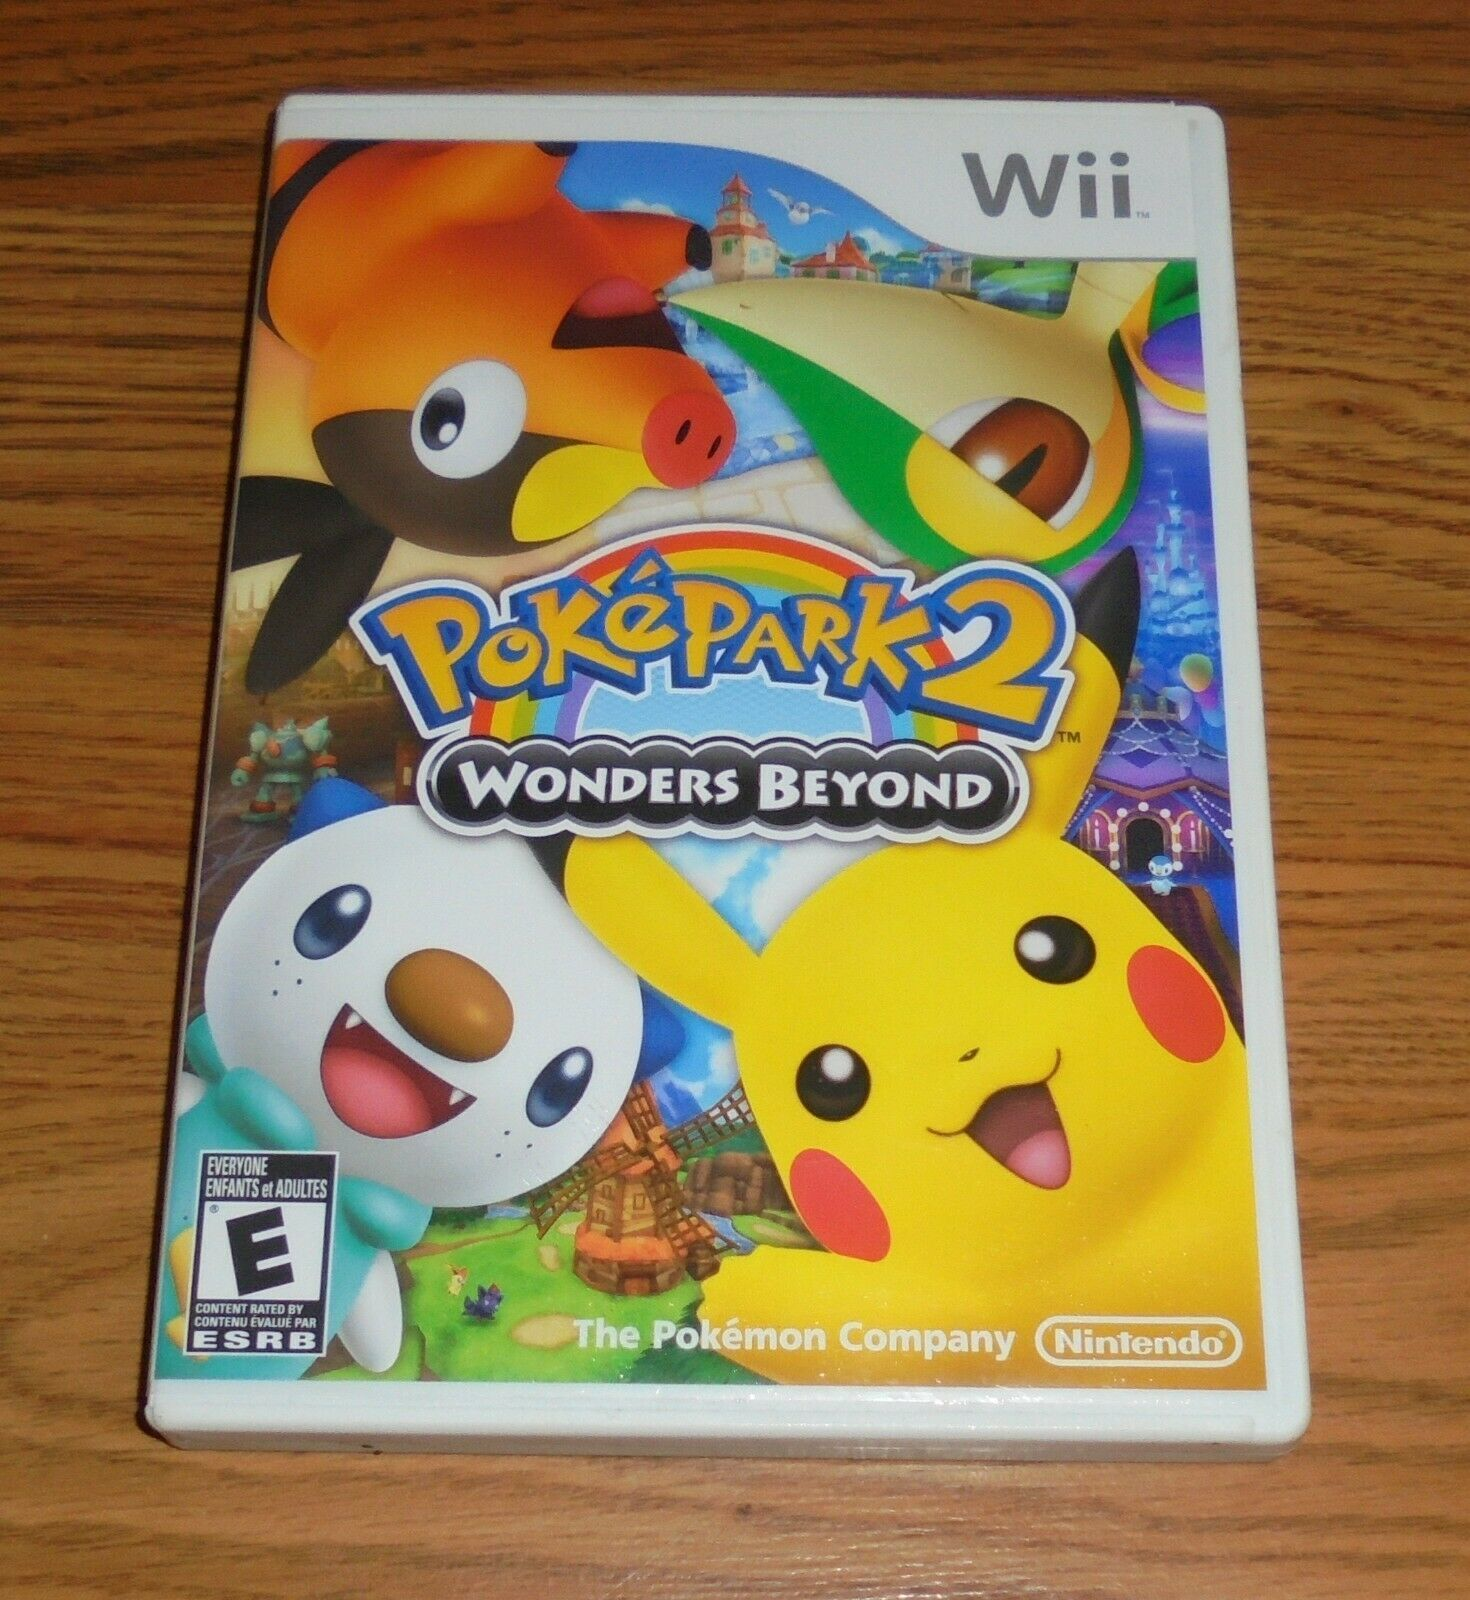 Primary image for PokePark 2: Wonders Beyond (Nintendo Wii, 2012) Pokemon Video Game